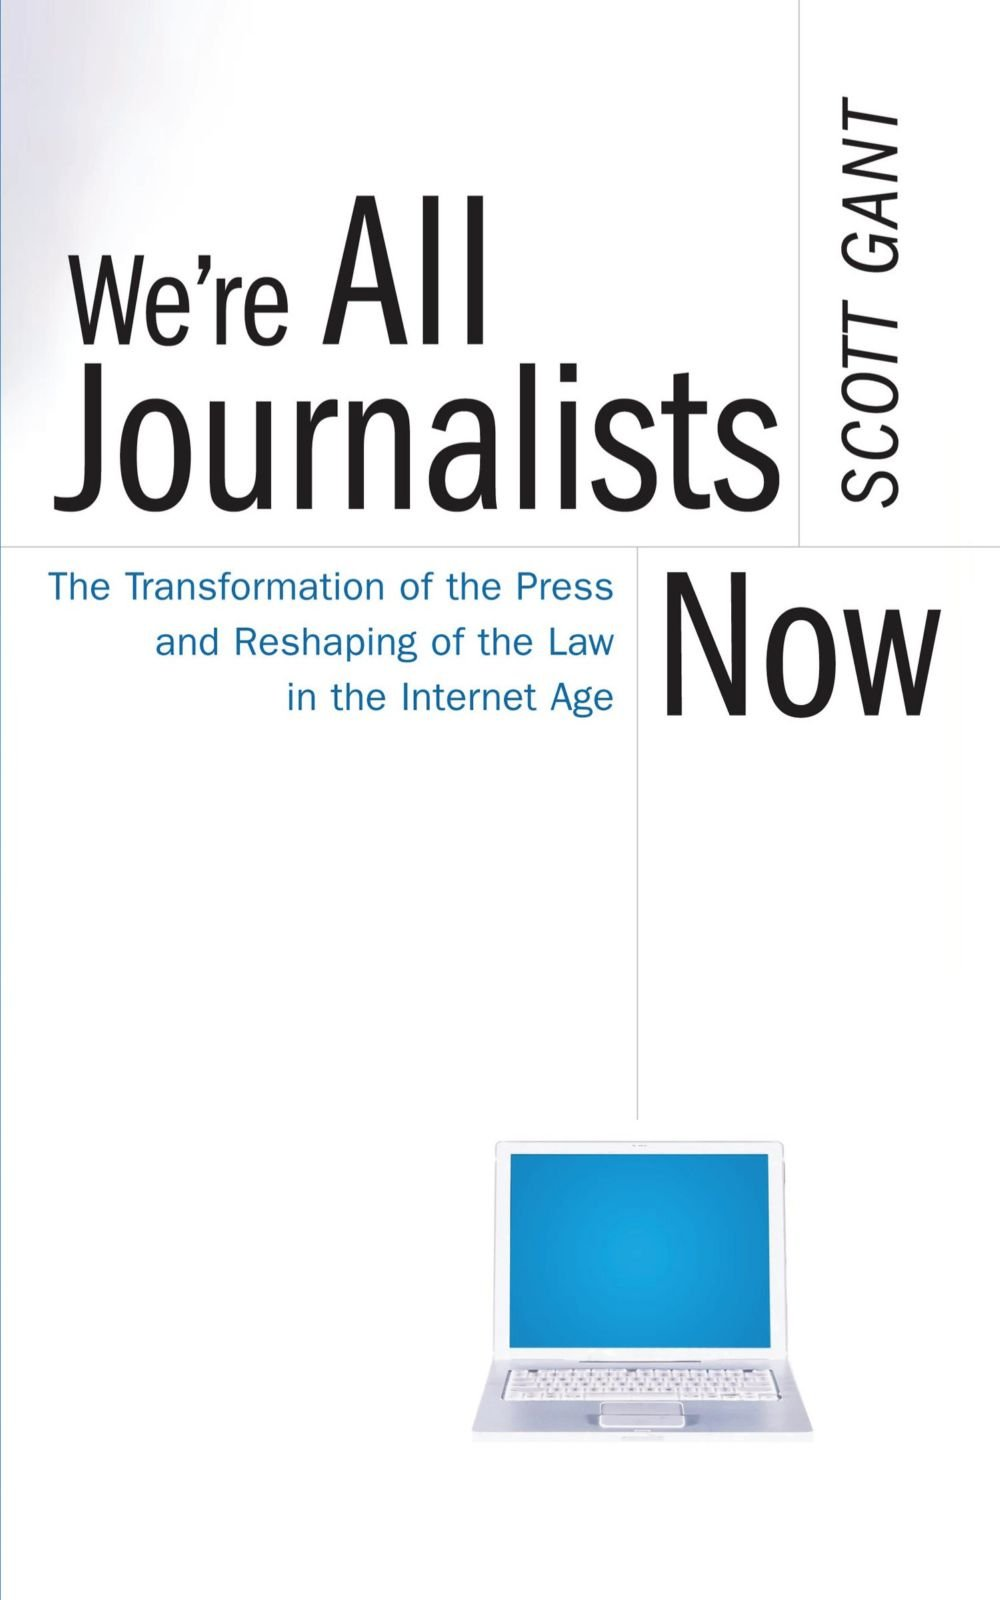 We're All Journalists Now: The Transformation of the Press and Reshaping of the Law in the Internet Age by Brand: Free Press